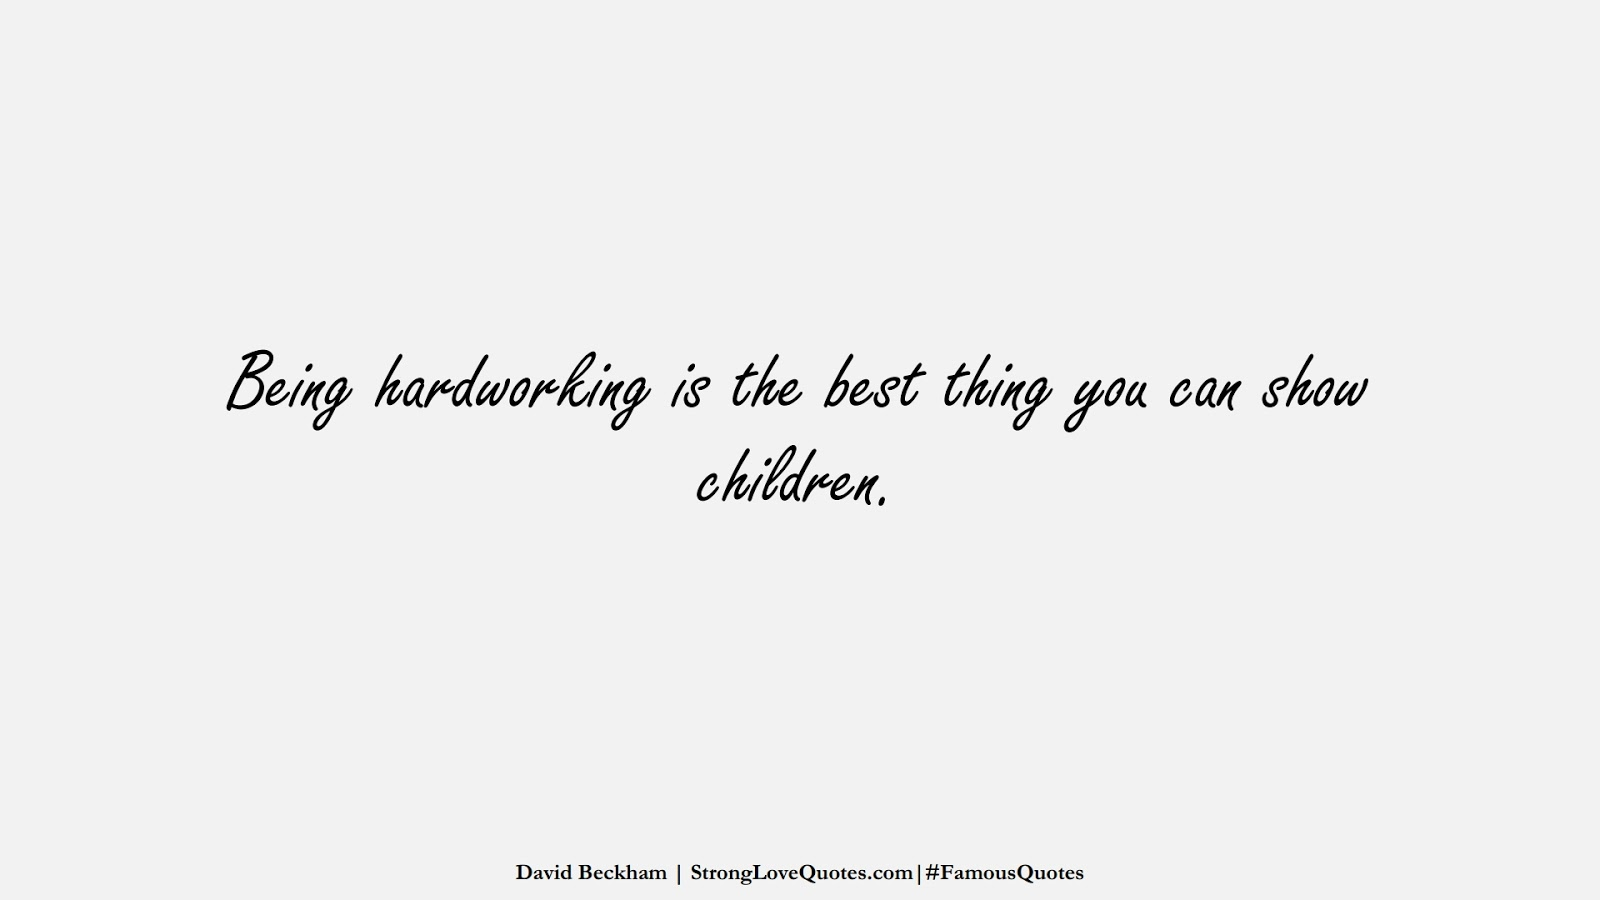 Being hardworking is the best thing you can show children. (David Beckham);  #FamousQuotes